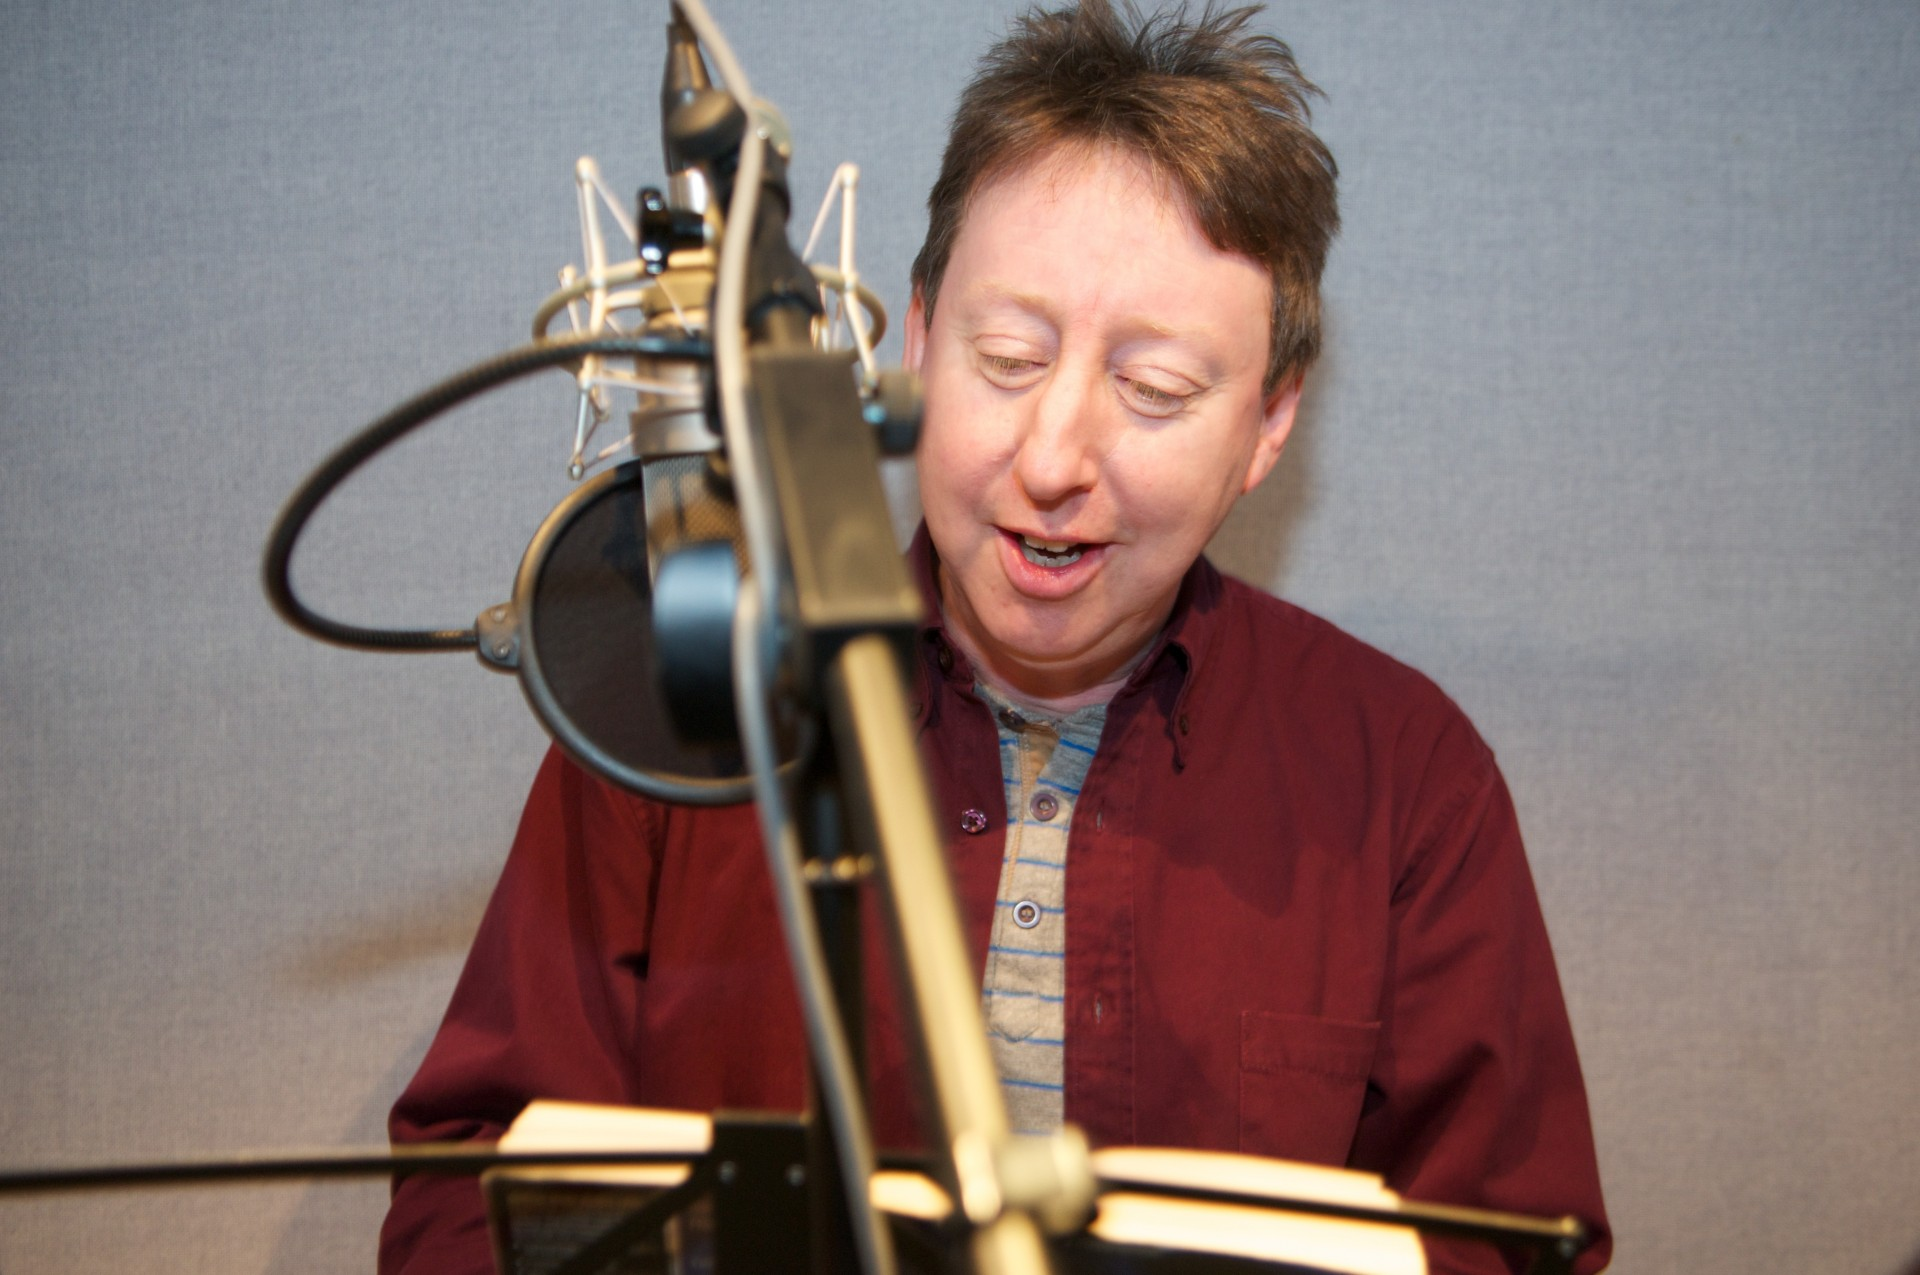 Man facing the camera in front of a microphone.